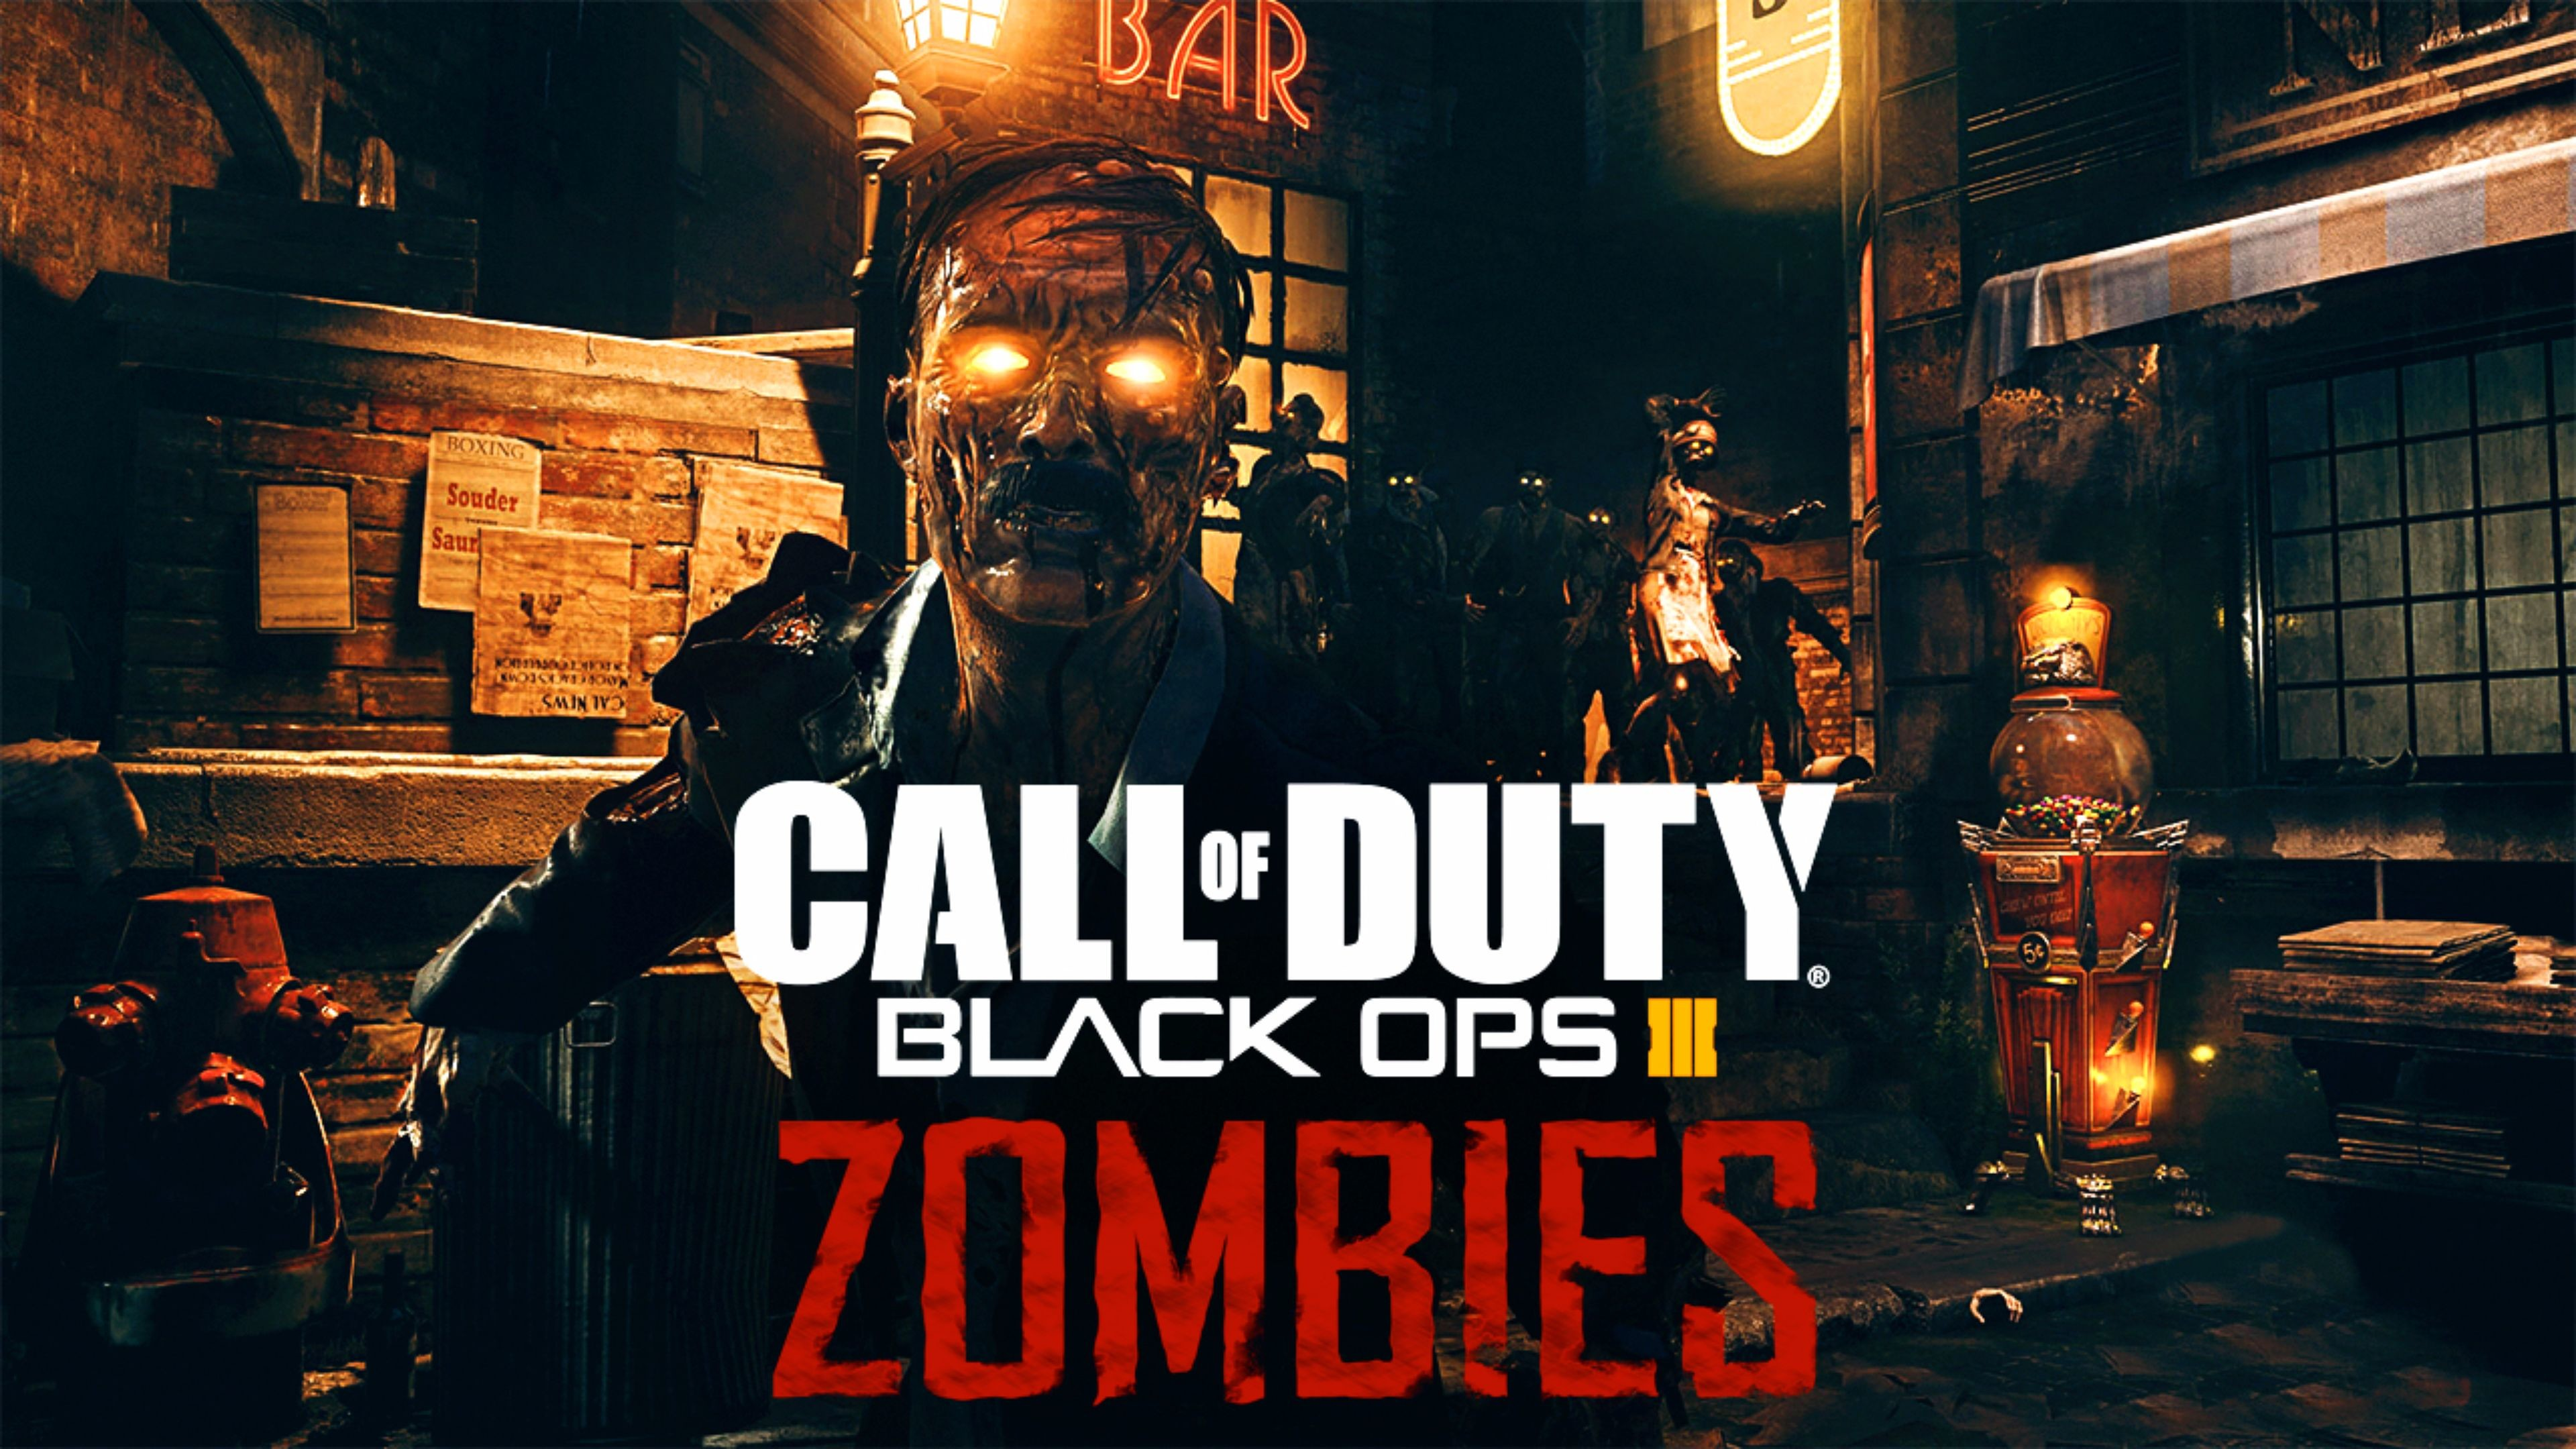 3840x2160 Top Zombies 2016 Call of Duty Black Ops 3 4K Wallpaper